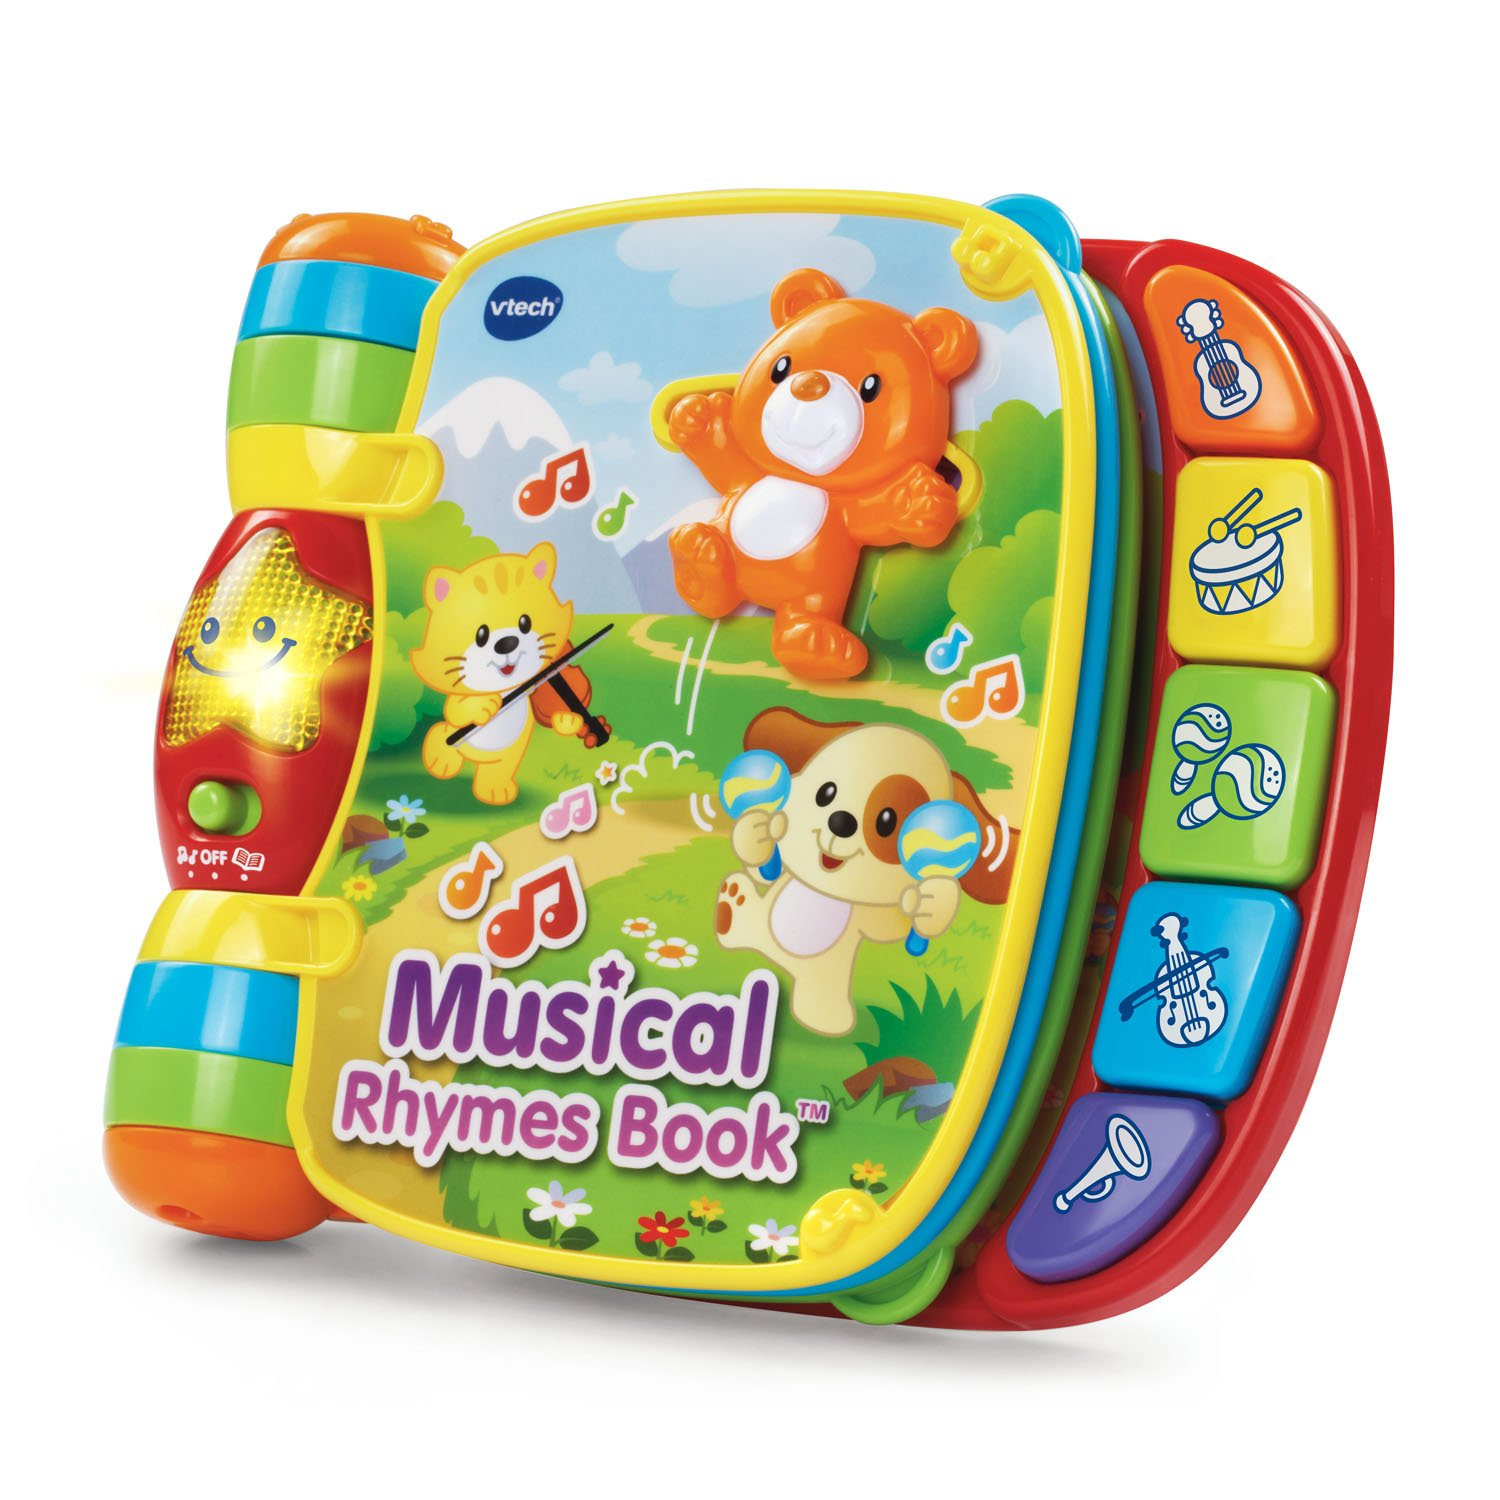 VTech Musical Rhymes Book VTech Amazon Jeux et jouets